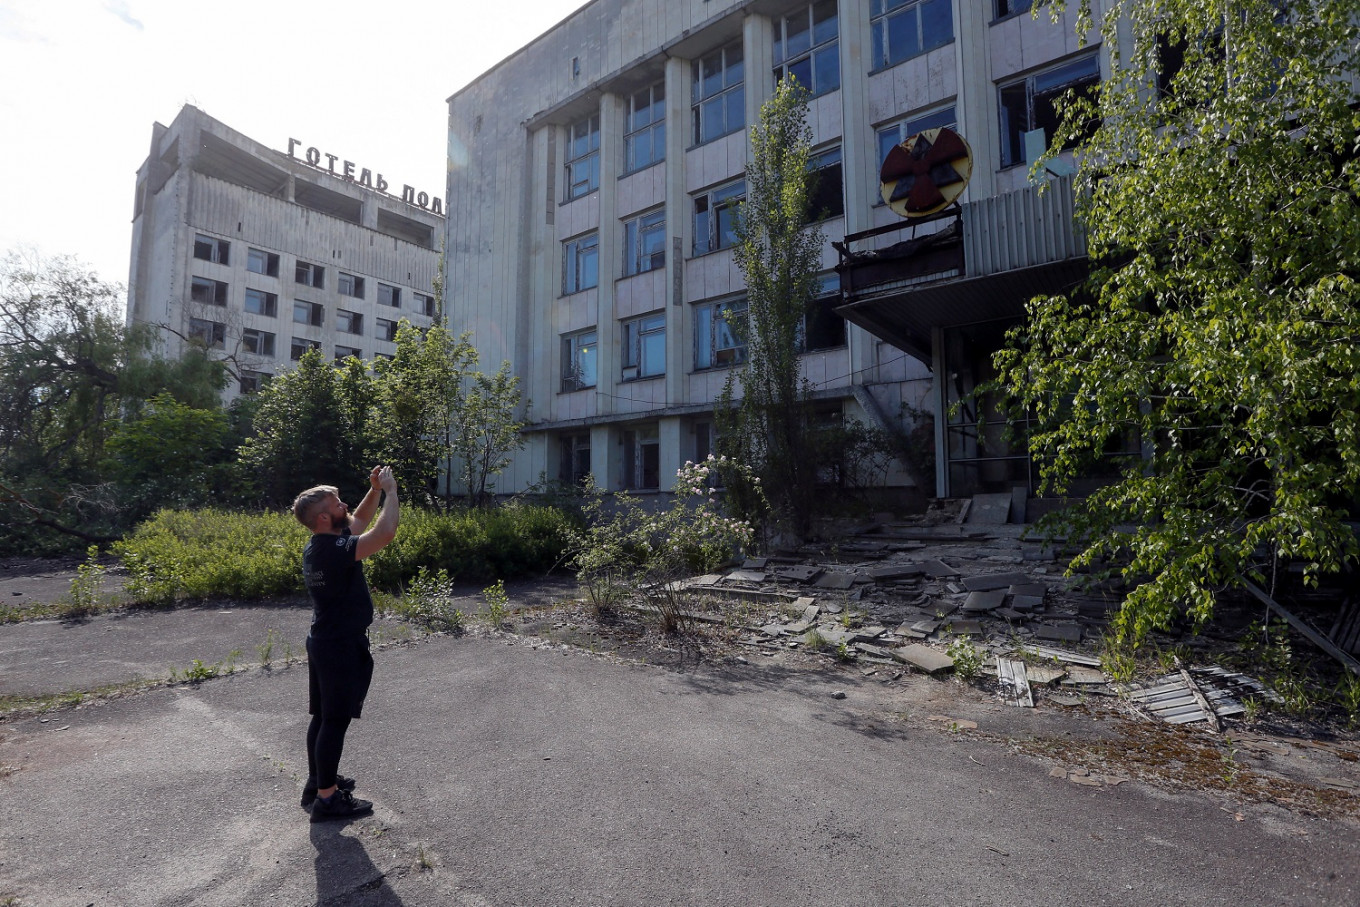 Chernobyl disaster site now tourist attraction